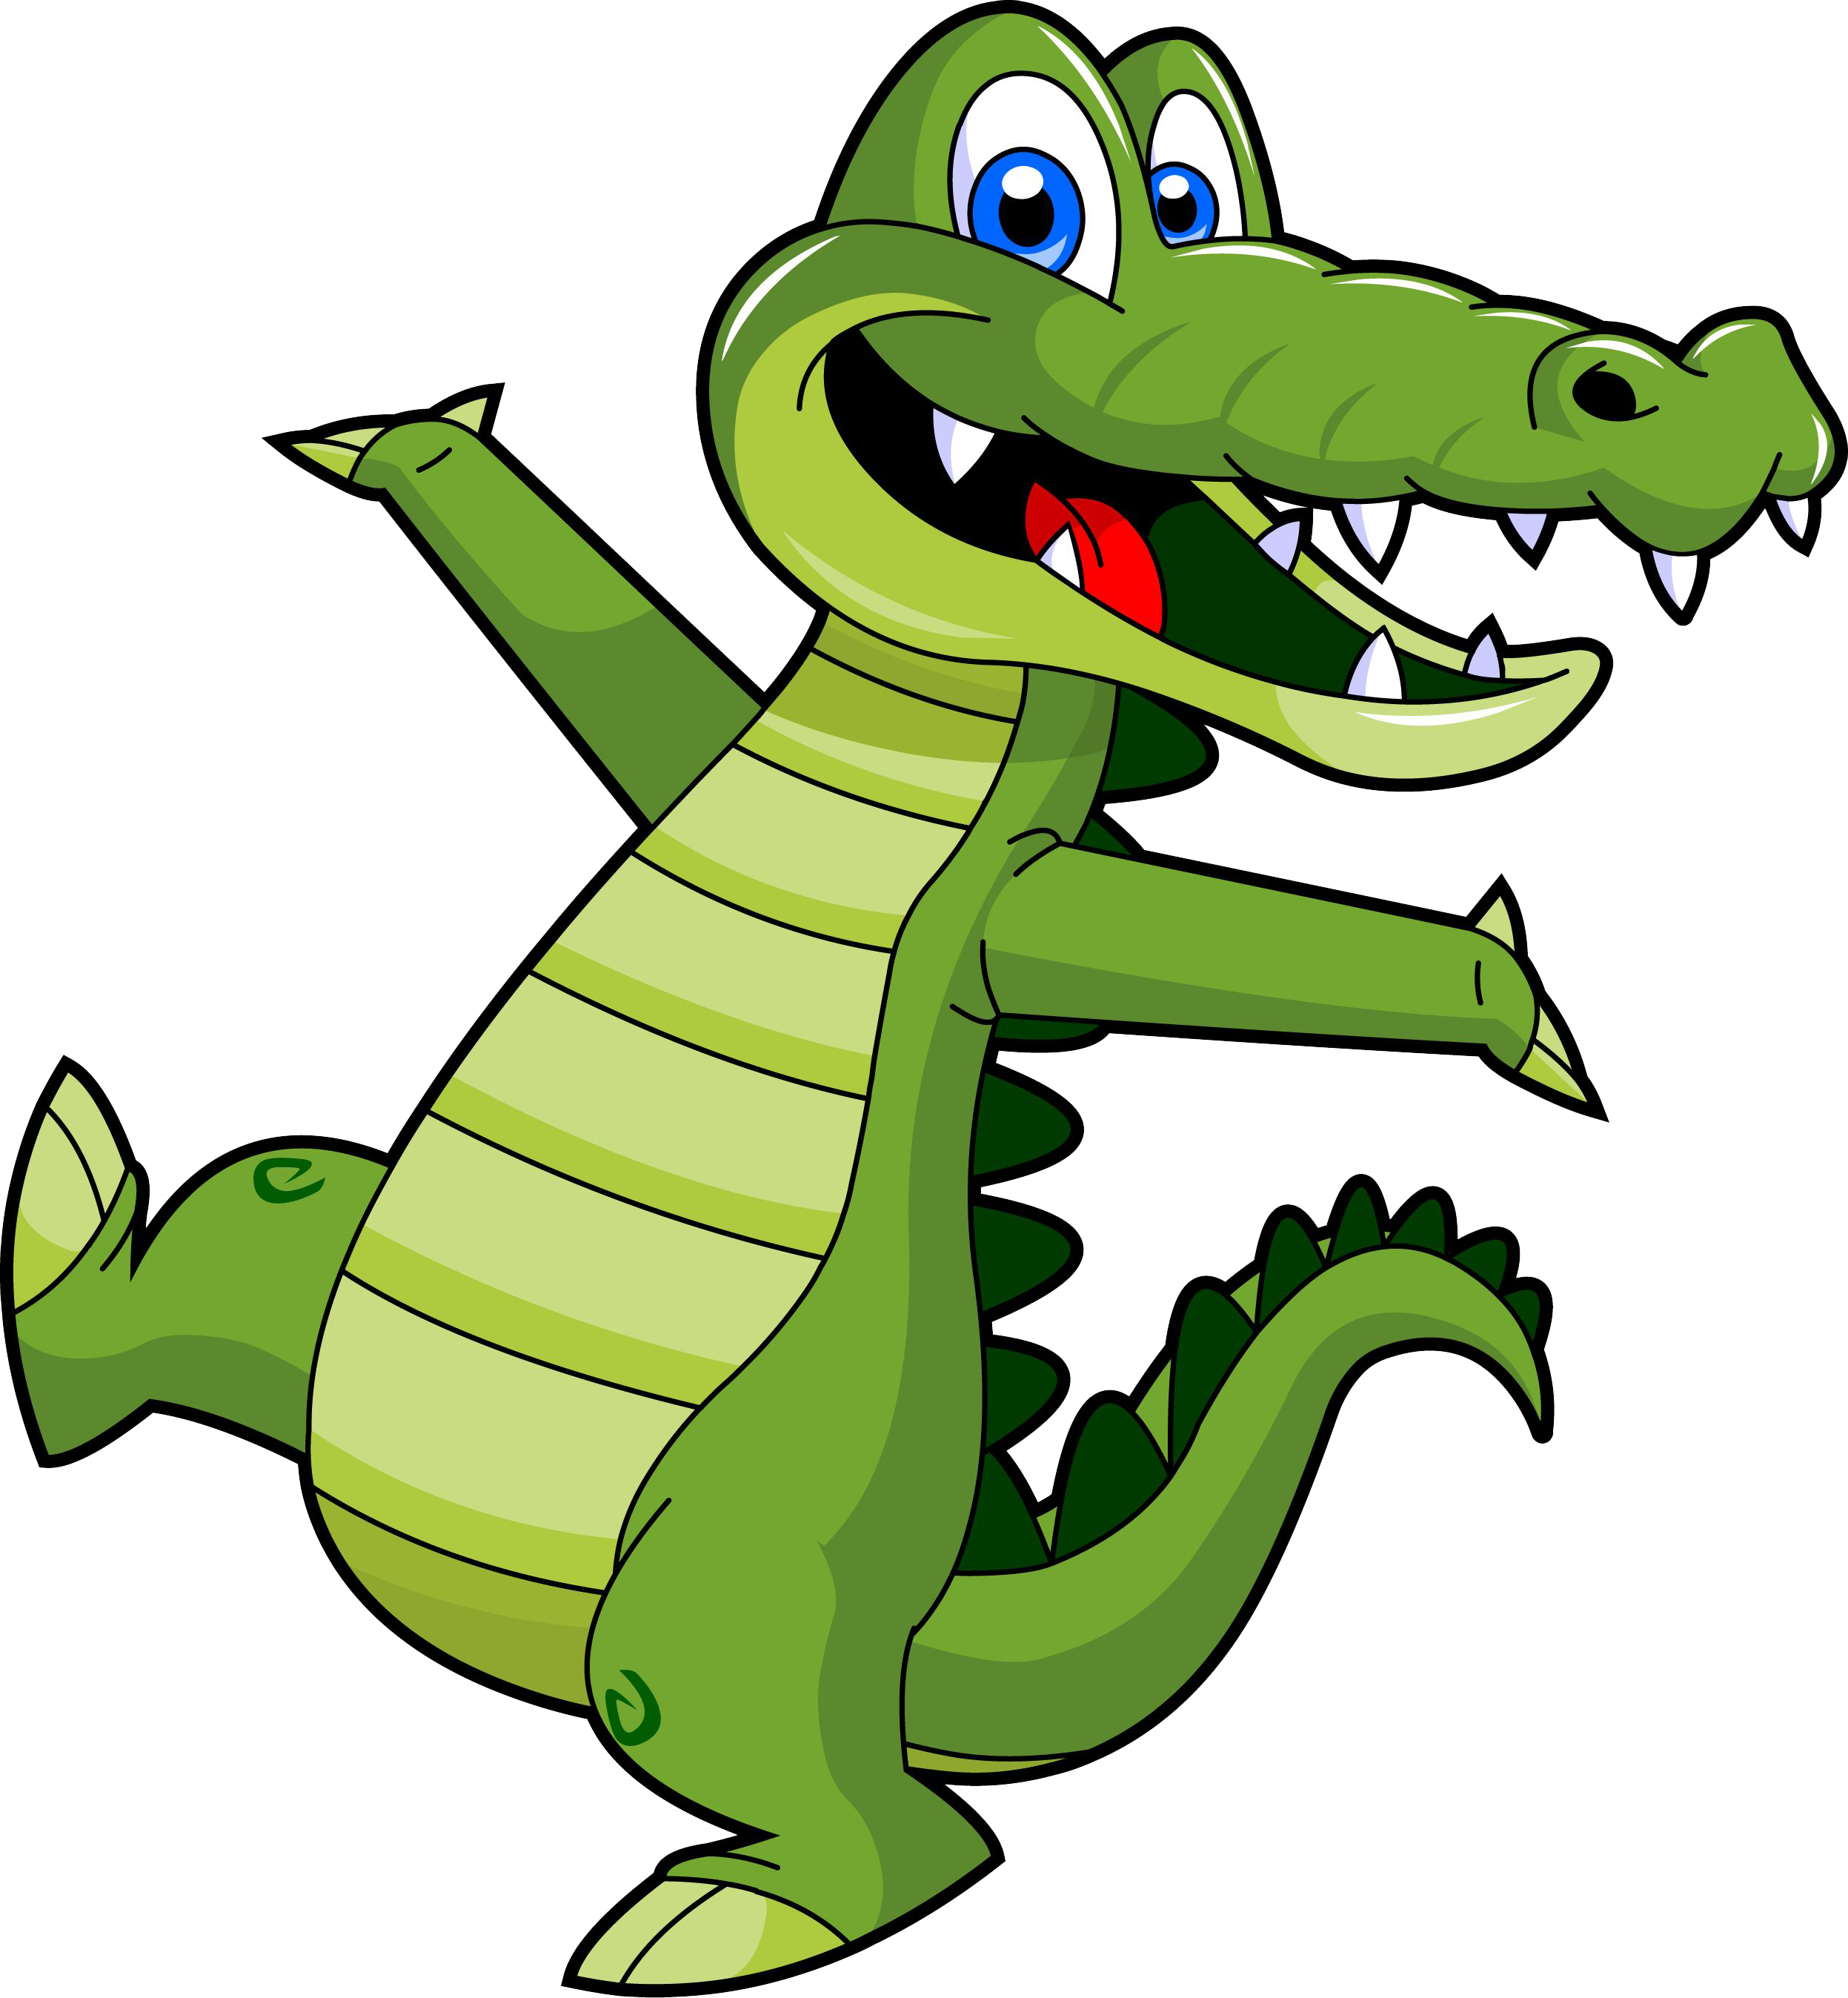 Alligator Image PNG Image